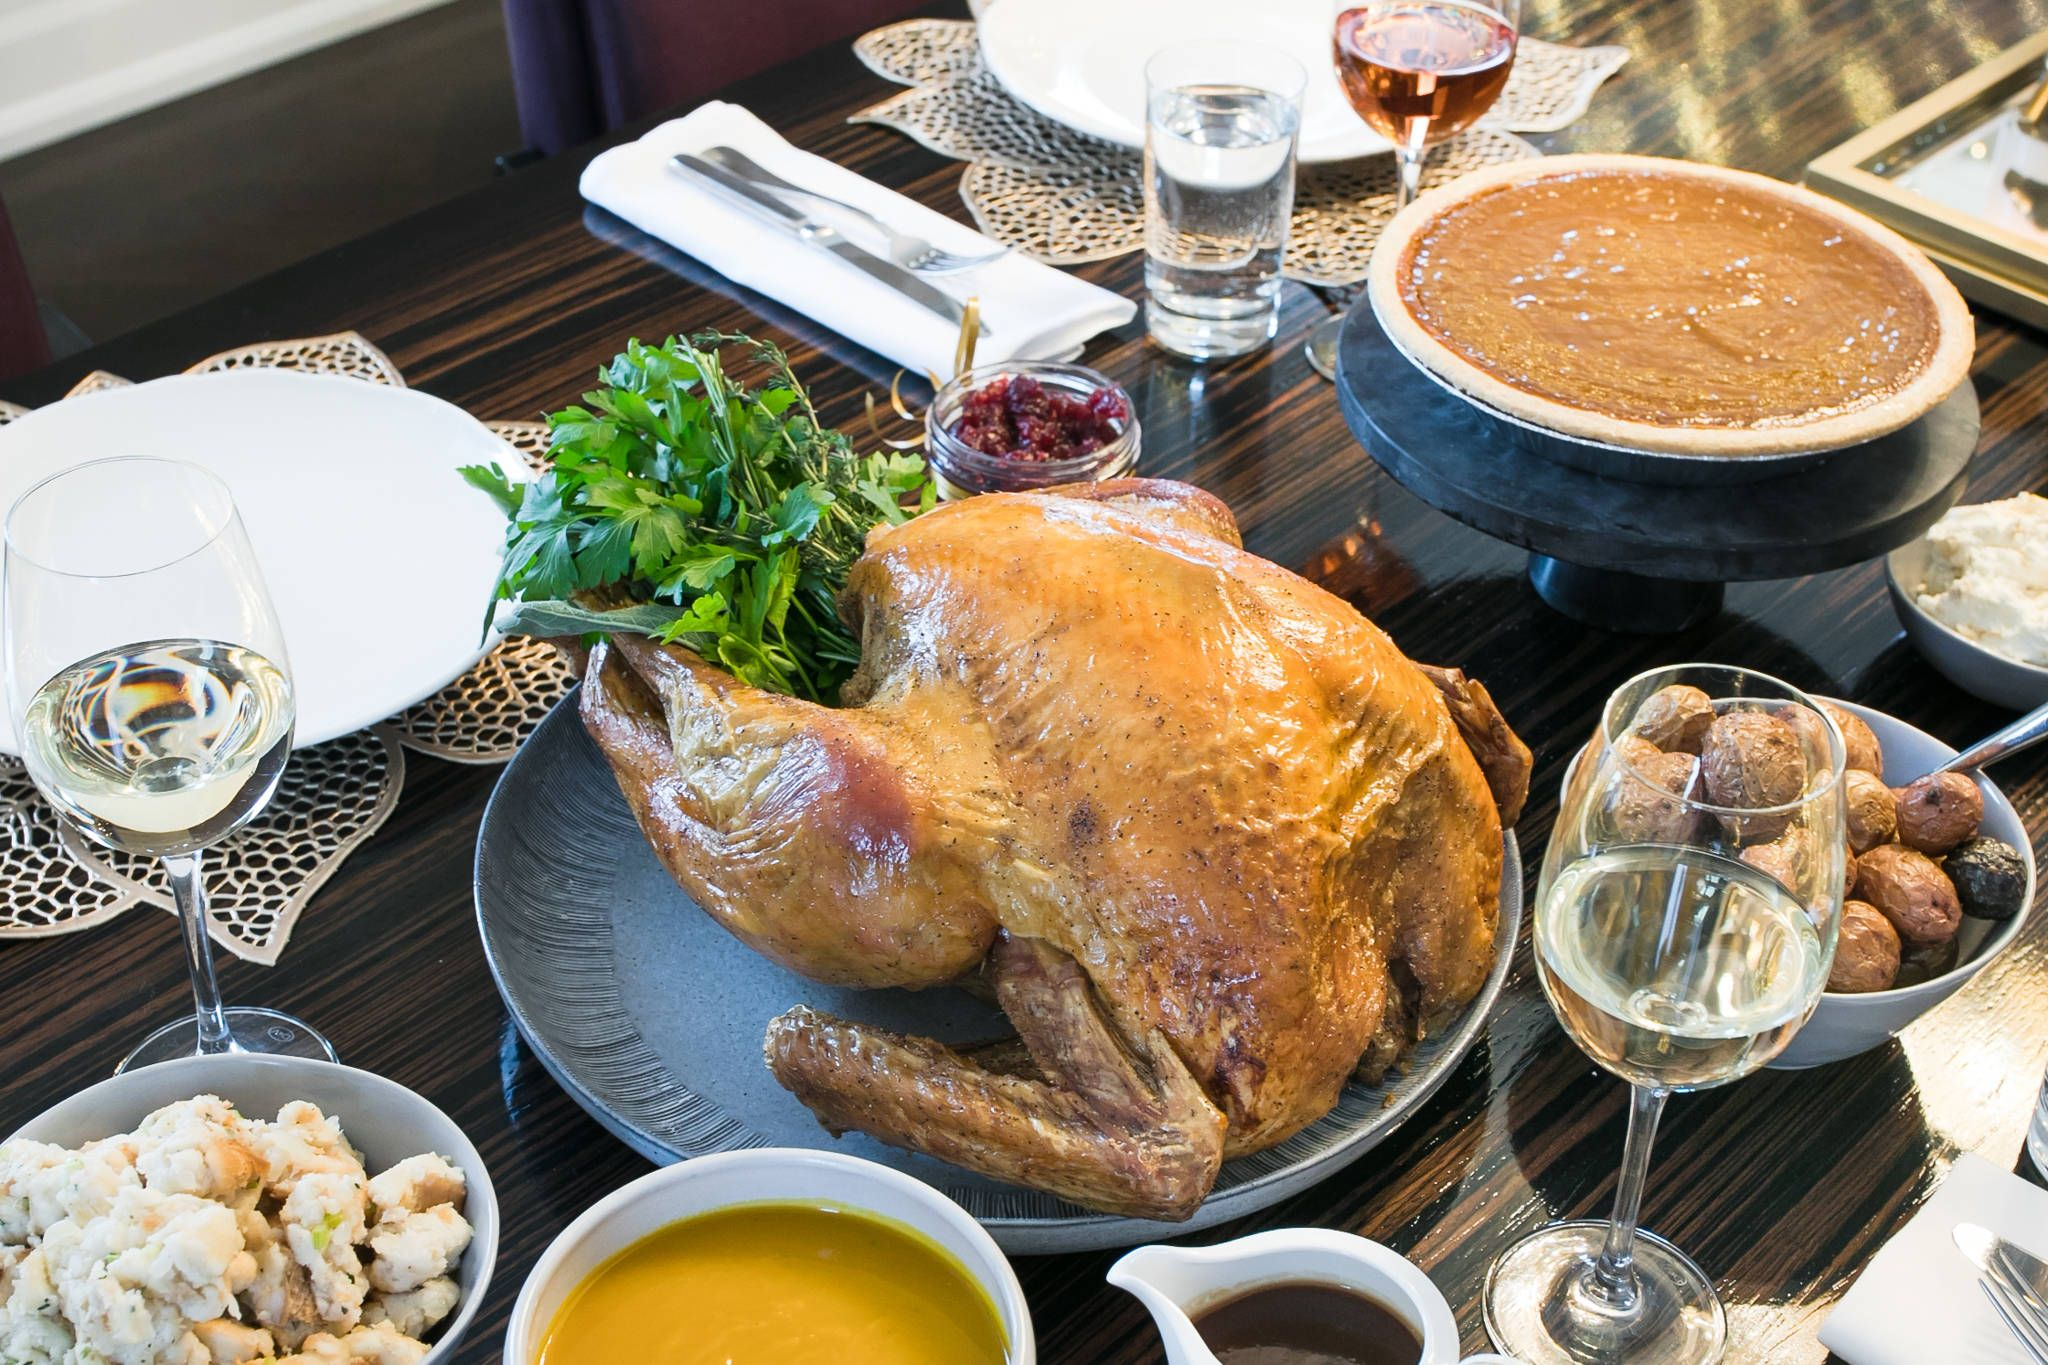 15 Takeout And Delivery Options For Thanksgiving Dinner In Toronto In 2020